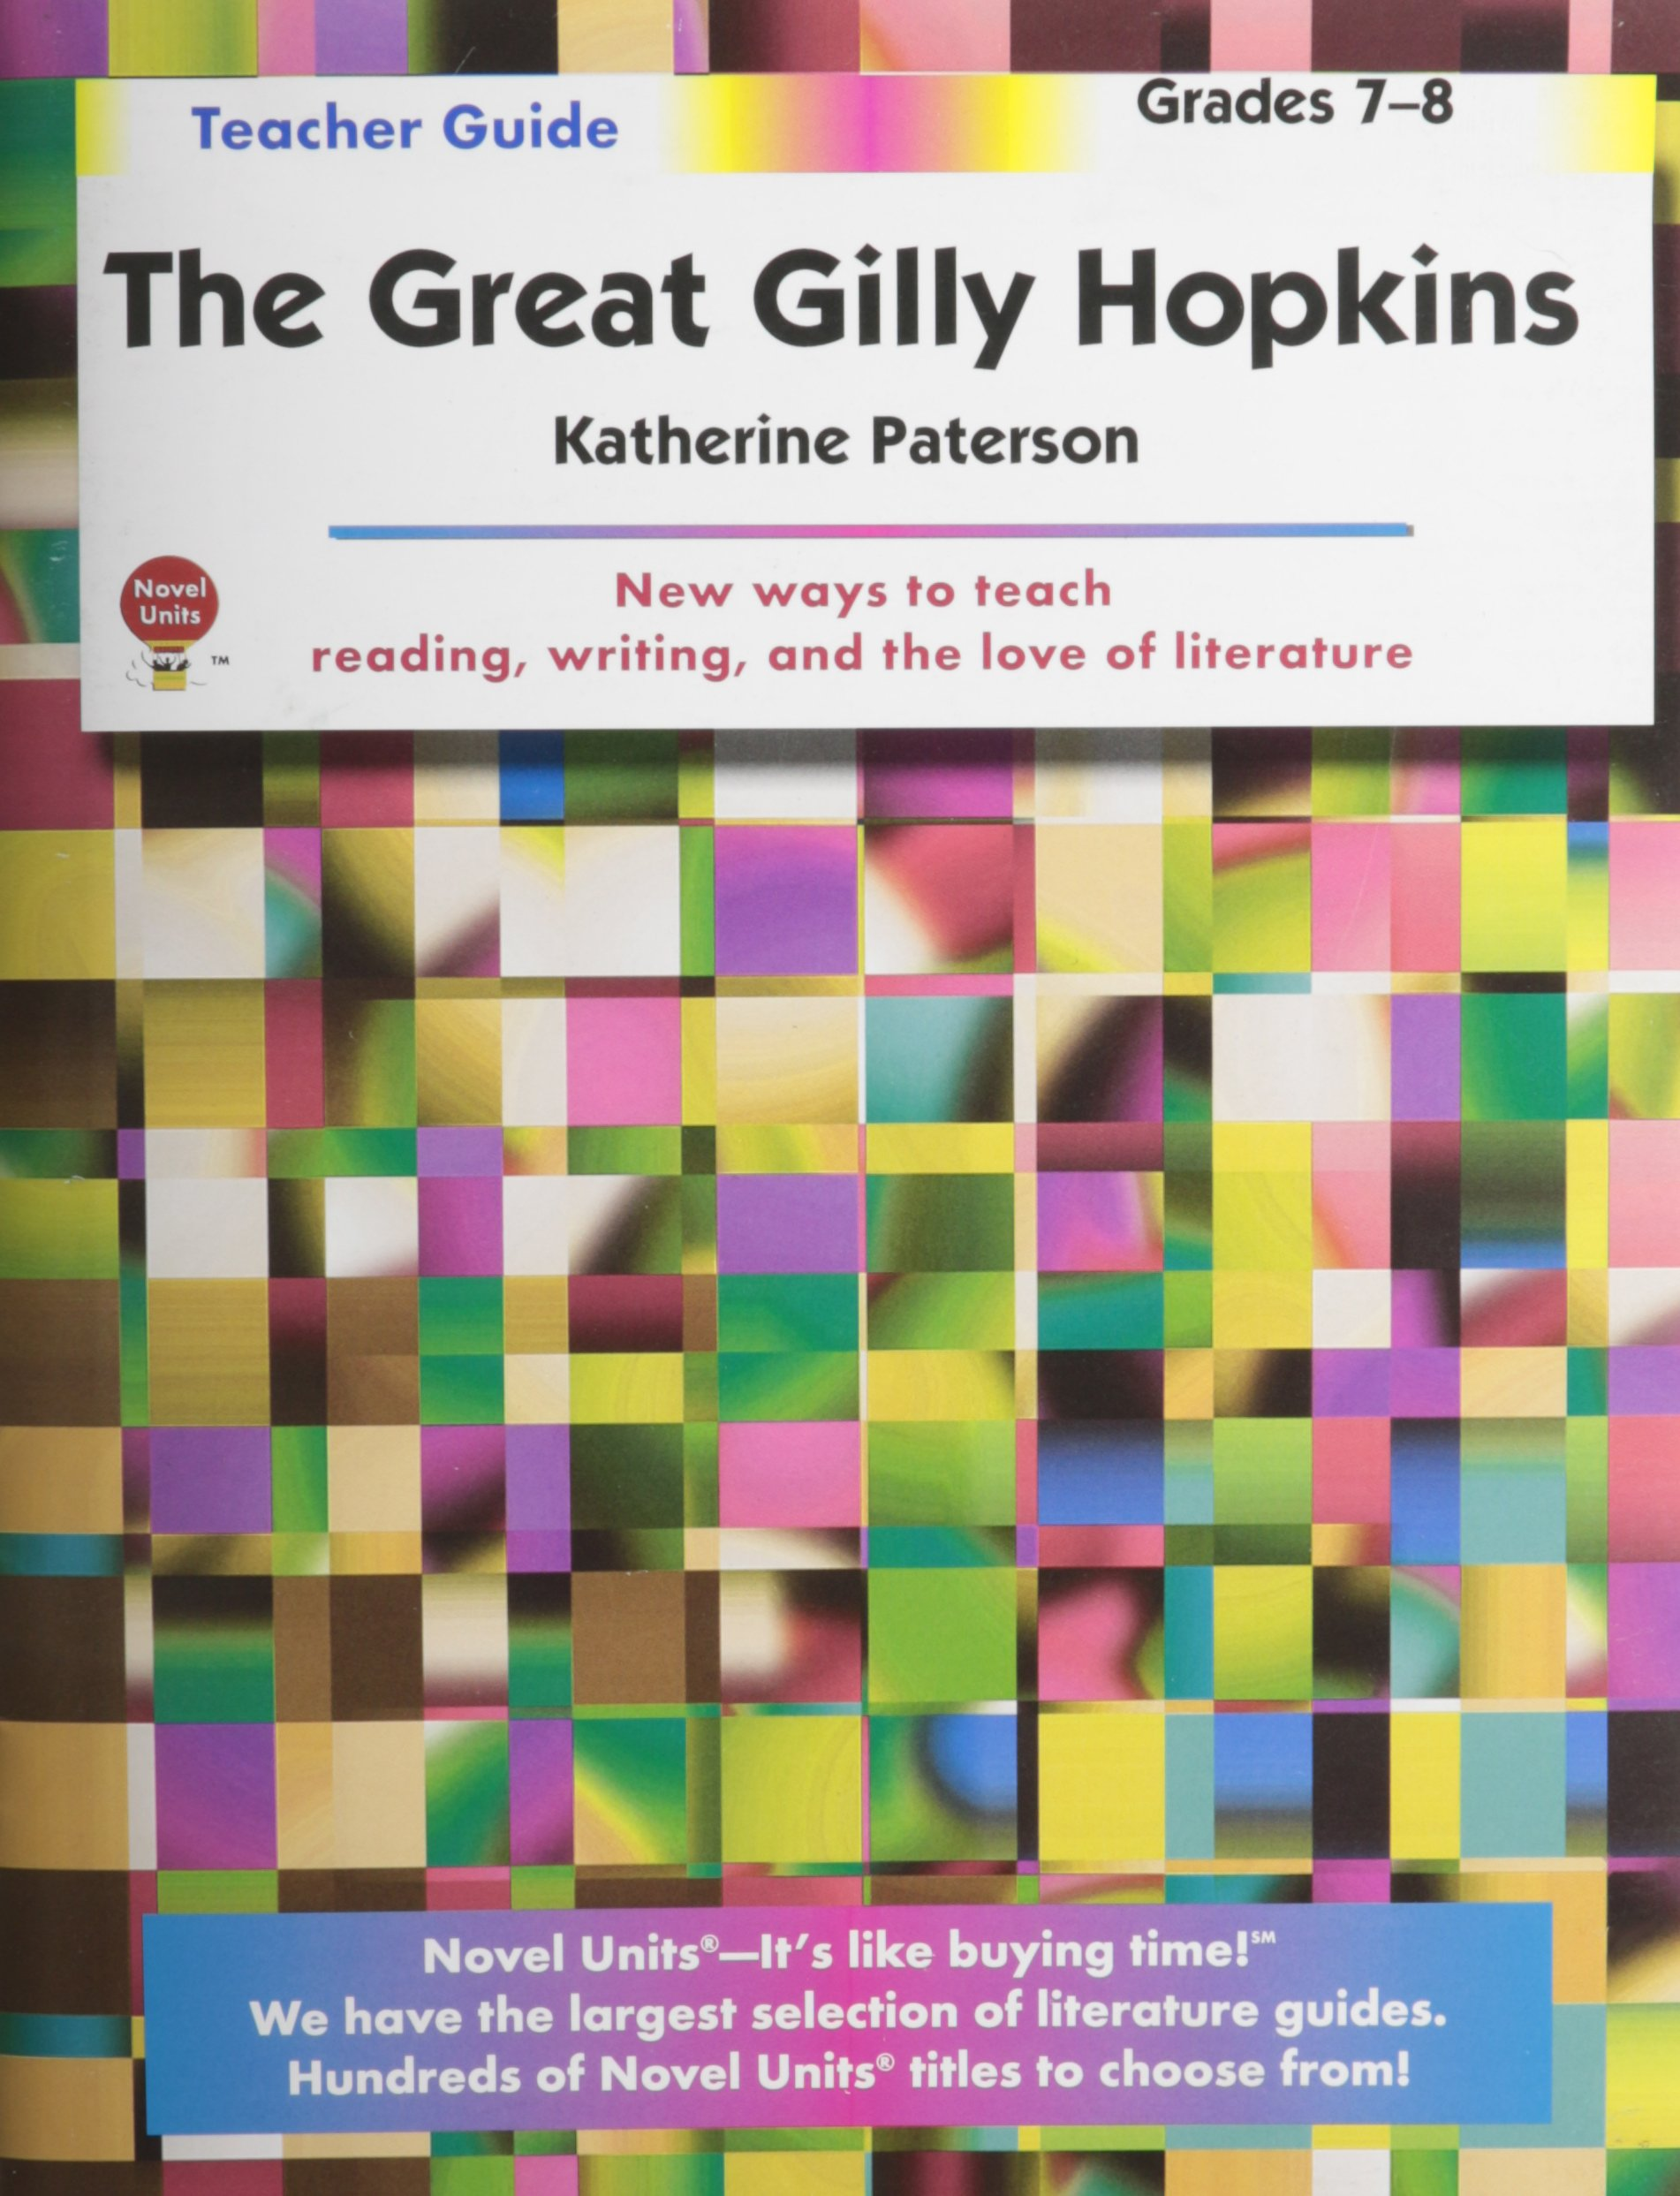 The great gilly hopkins teacher guide by novel units inc novel the great gilly hopkins teacher guide by novel units inc novel units inc 9781561374281 amazon books fandeluxe Choice Image